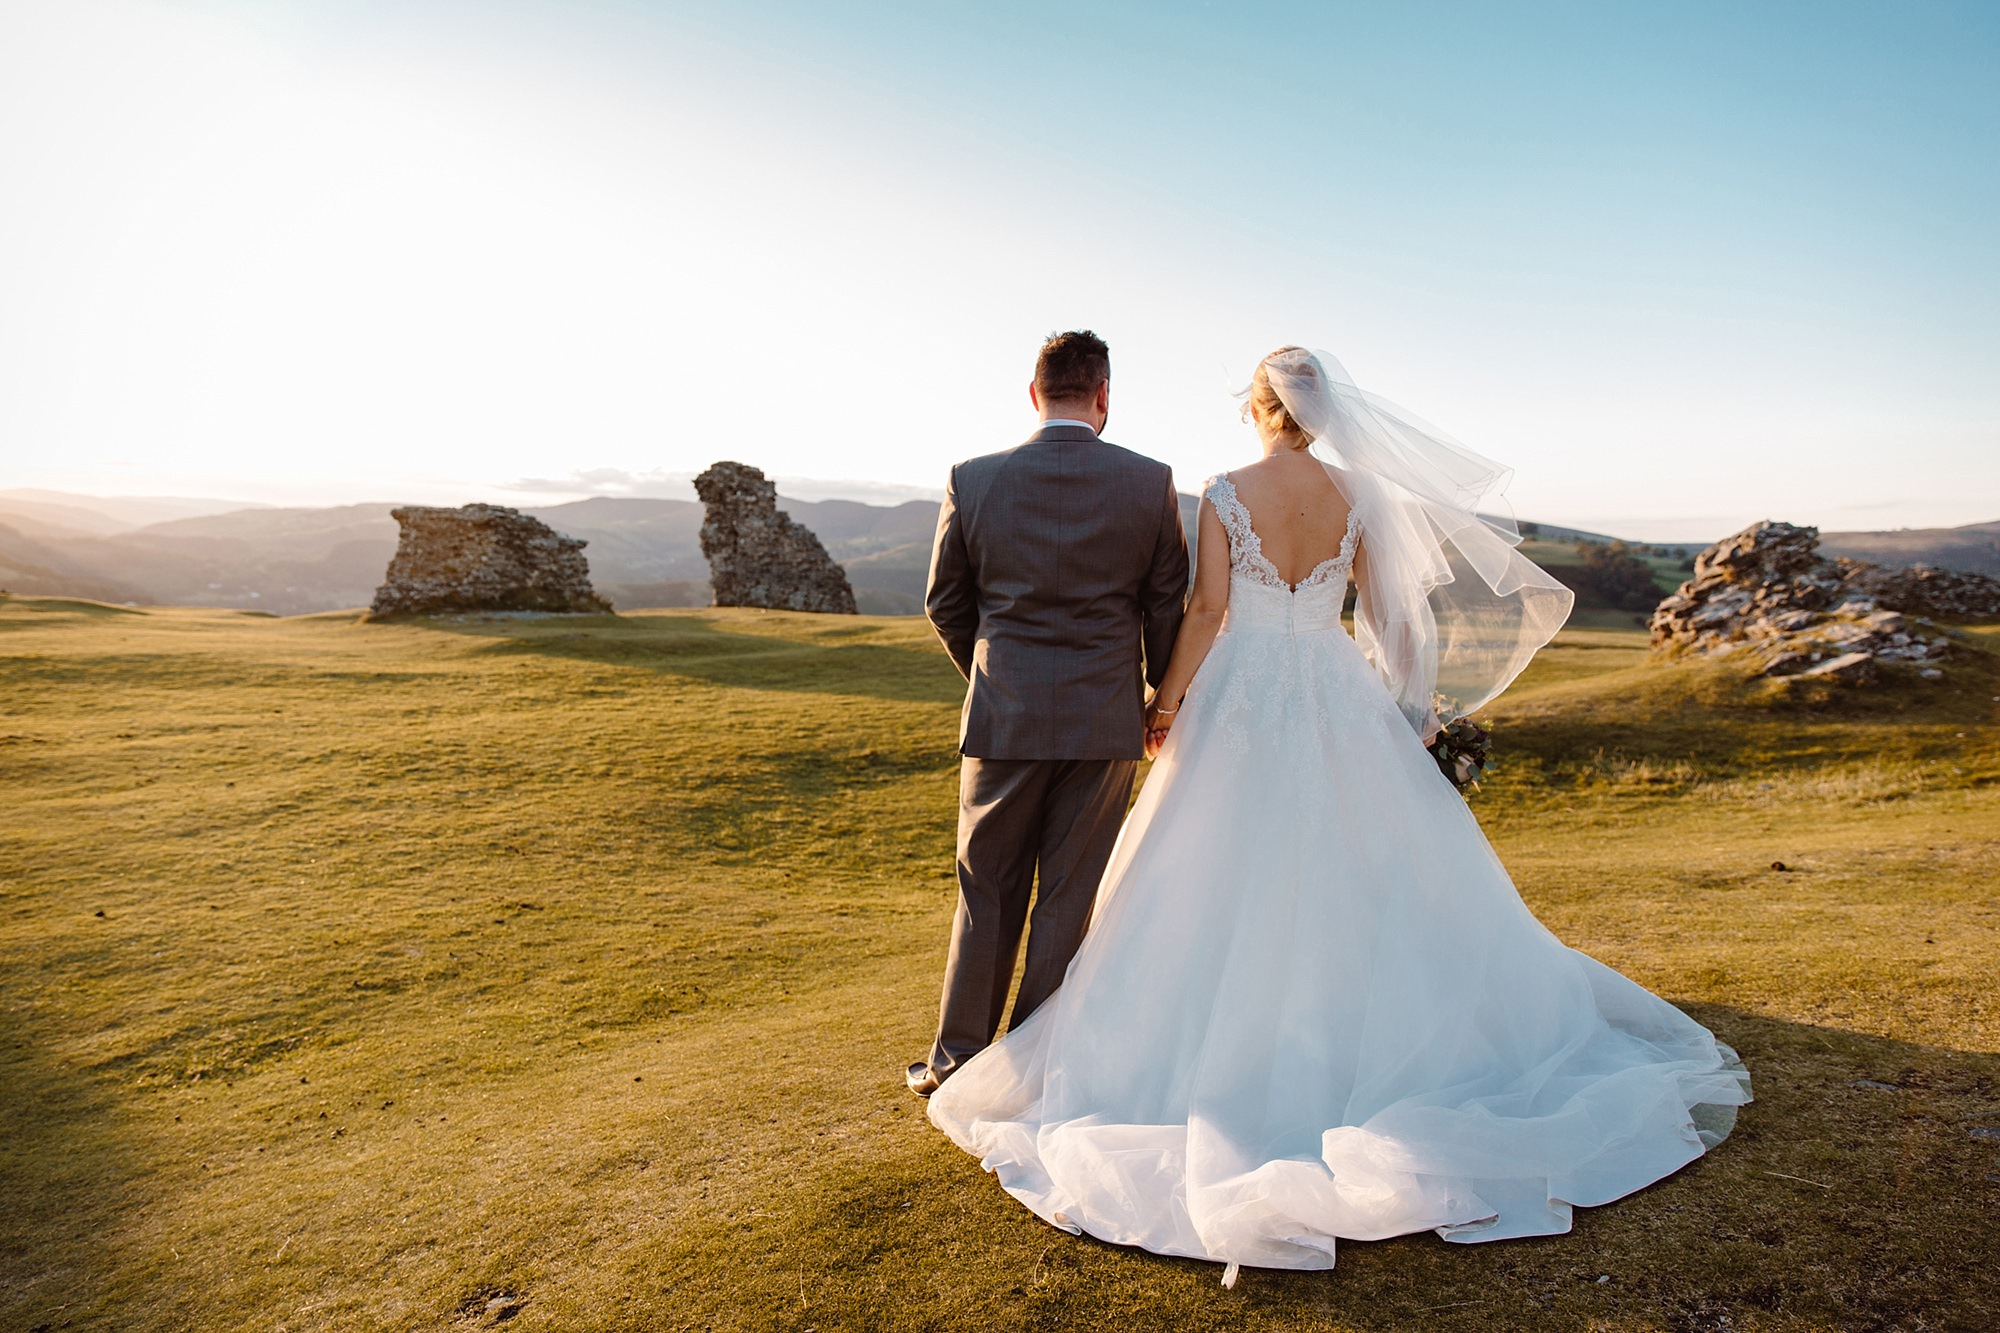 Castell dinas bran wedding photography a bride and groom walk together at castle ruins at sunset